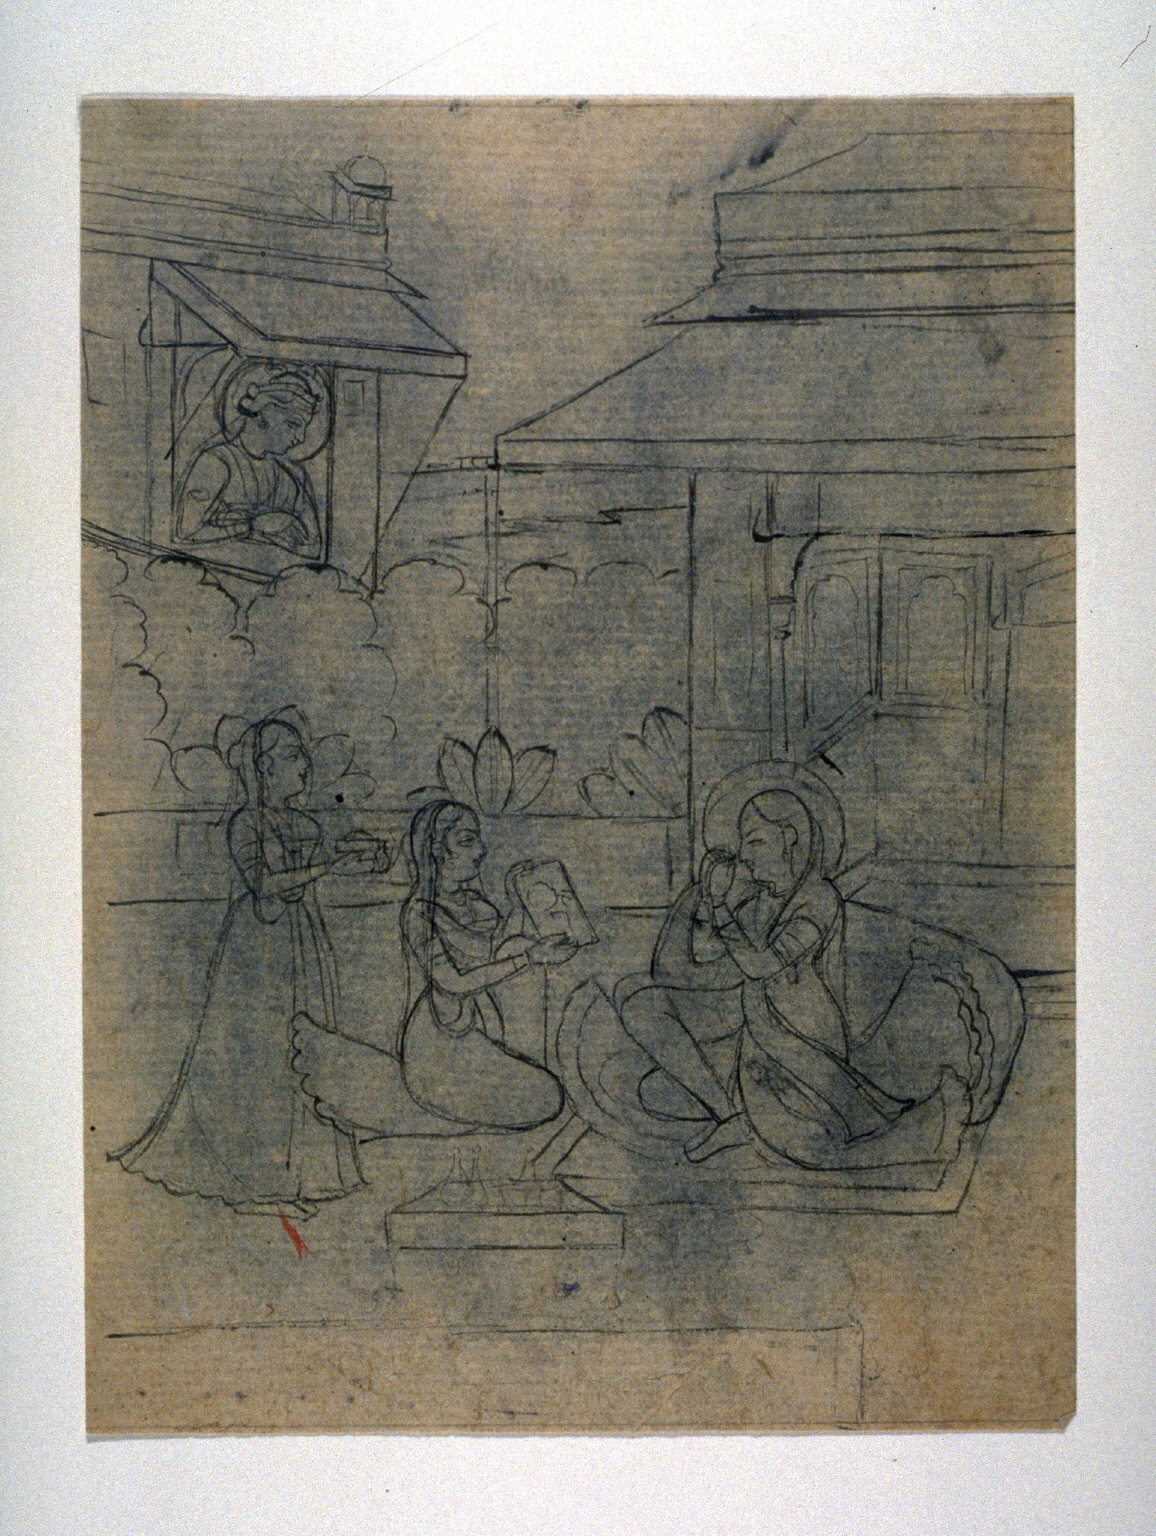 Lady, Attended by Two Maids, Looking in a Mirror ; a Prince Spies on Them from a Window Overlooking a Terrace